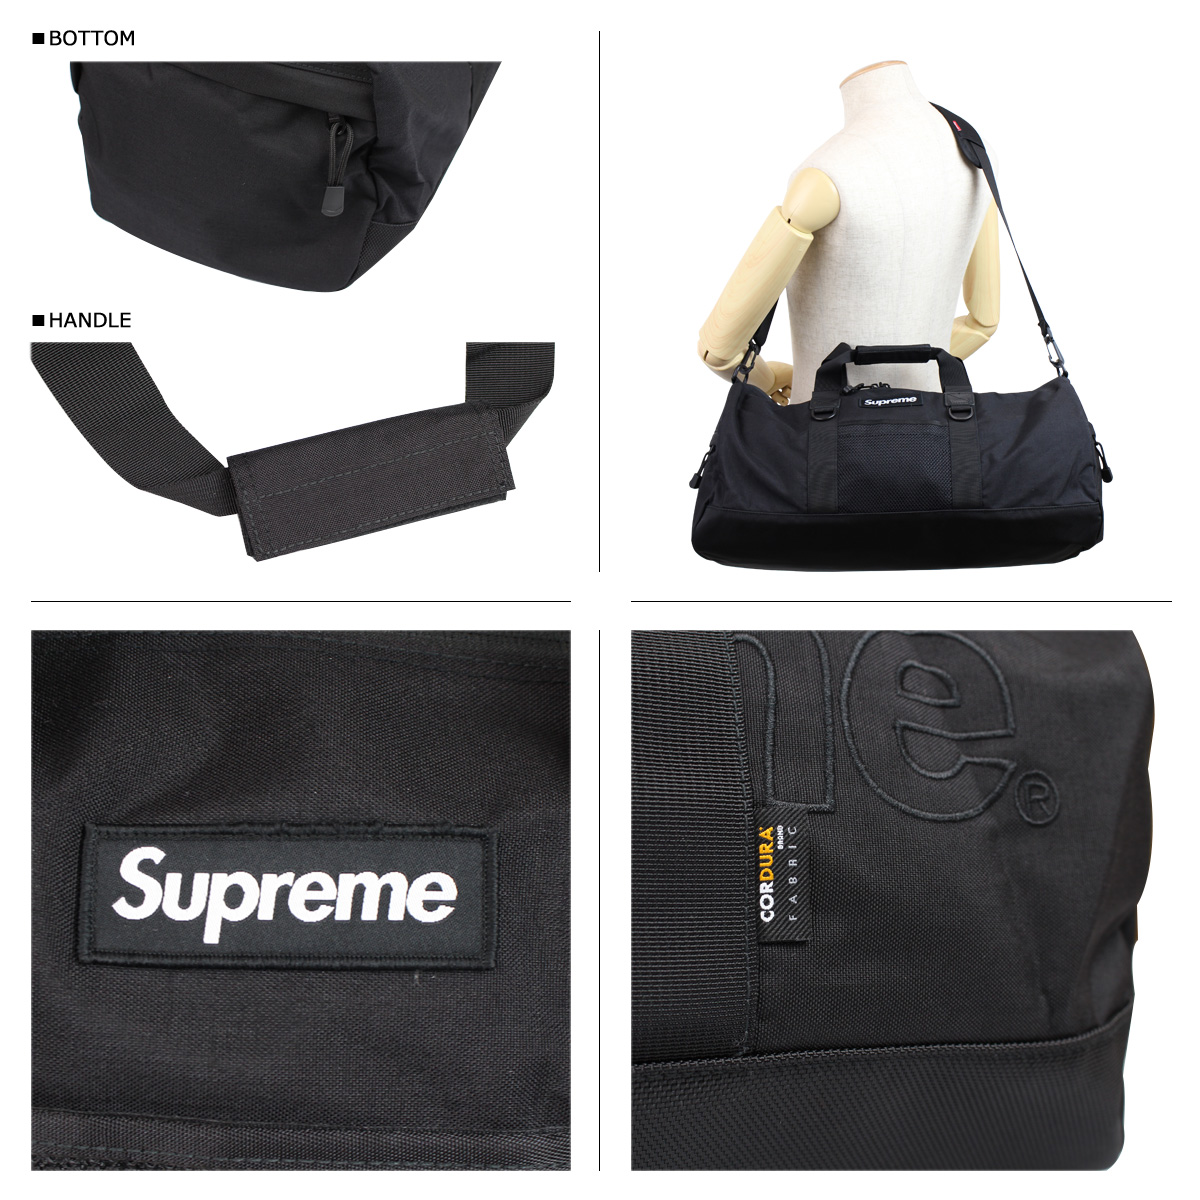 Supreme Supreme men's Duffle Bag 2 WAY 2 color CONTOUR DUFFLE BAG [11 / 20 new in stock]